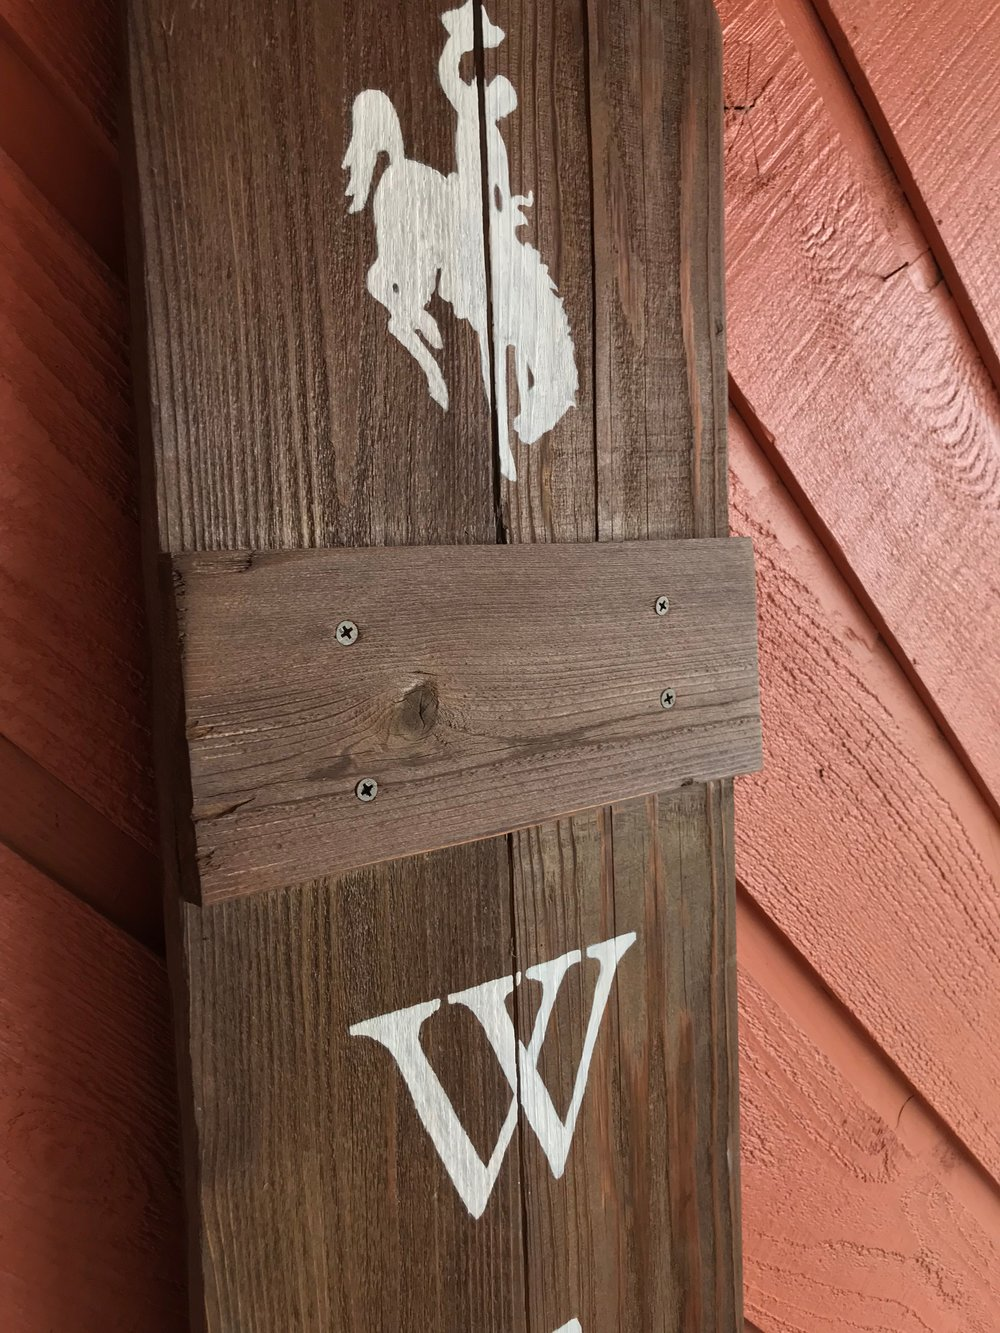 Top 10 wood staining and finishing tips - Peonies and Cream